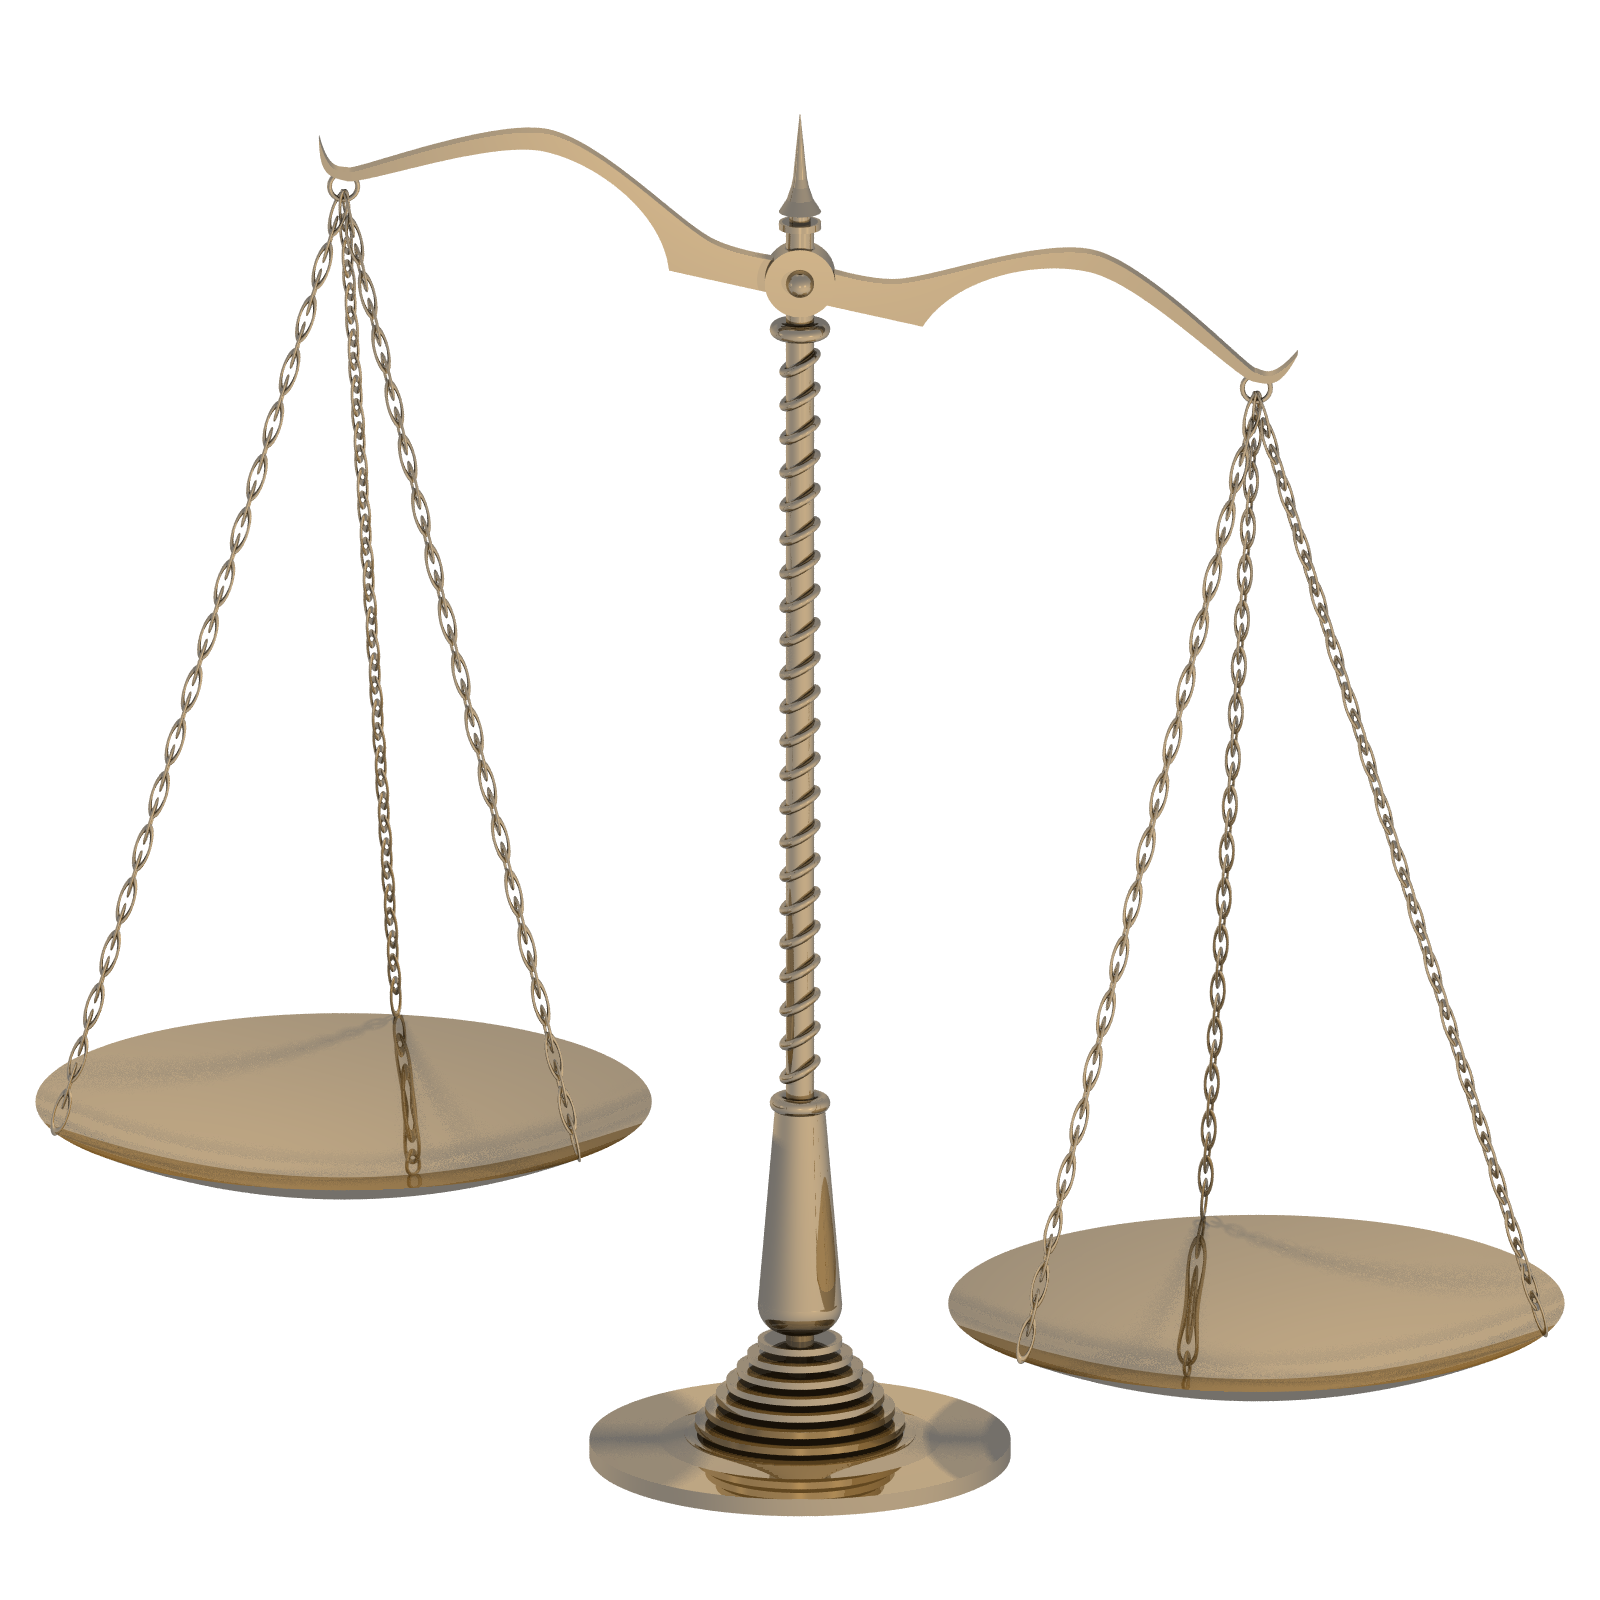 scale of justice images clipart best scales of justice clip art with book background scales of justice clip art in laurels